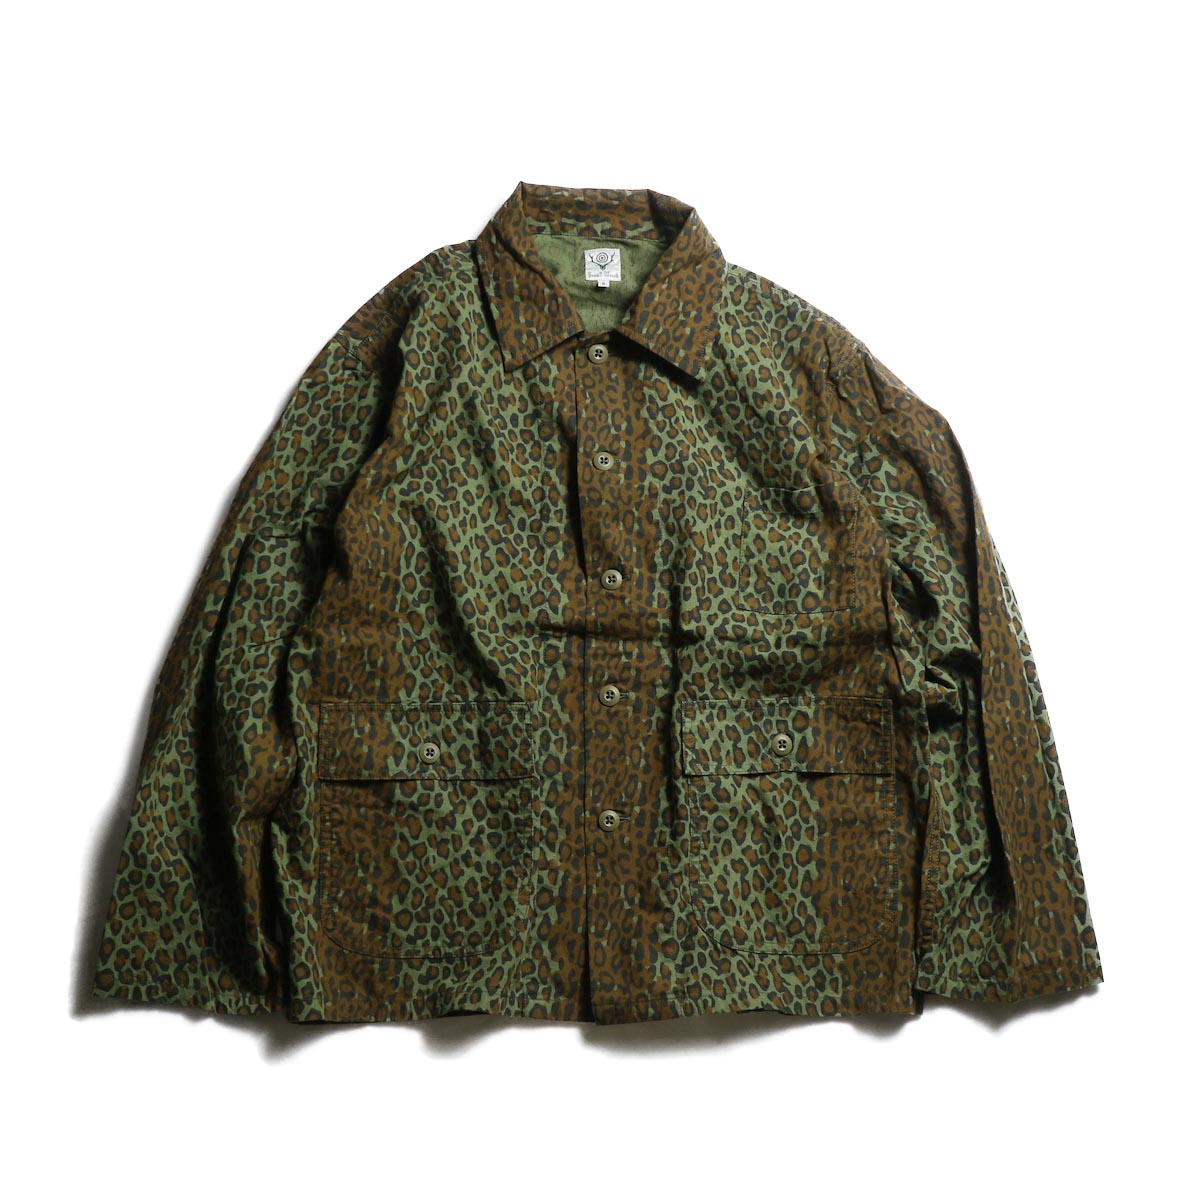 SOUTH2 WEST8 / Hunting Shirt - Printed Flannel / Camouflage (Leopard)